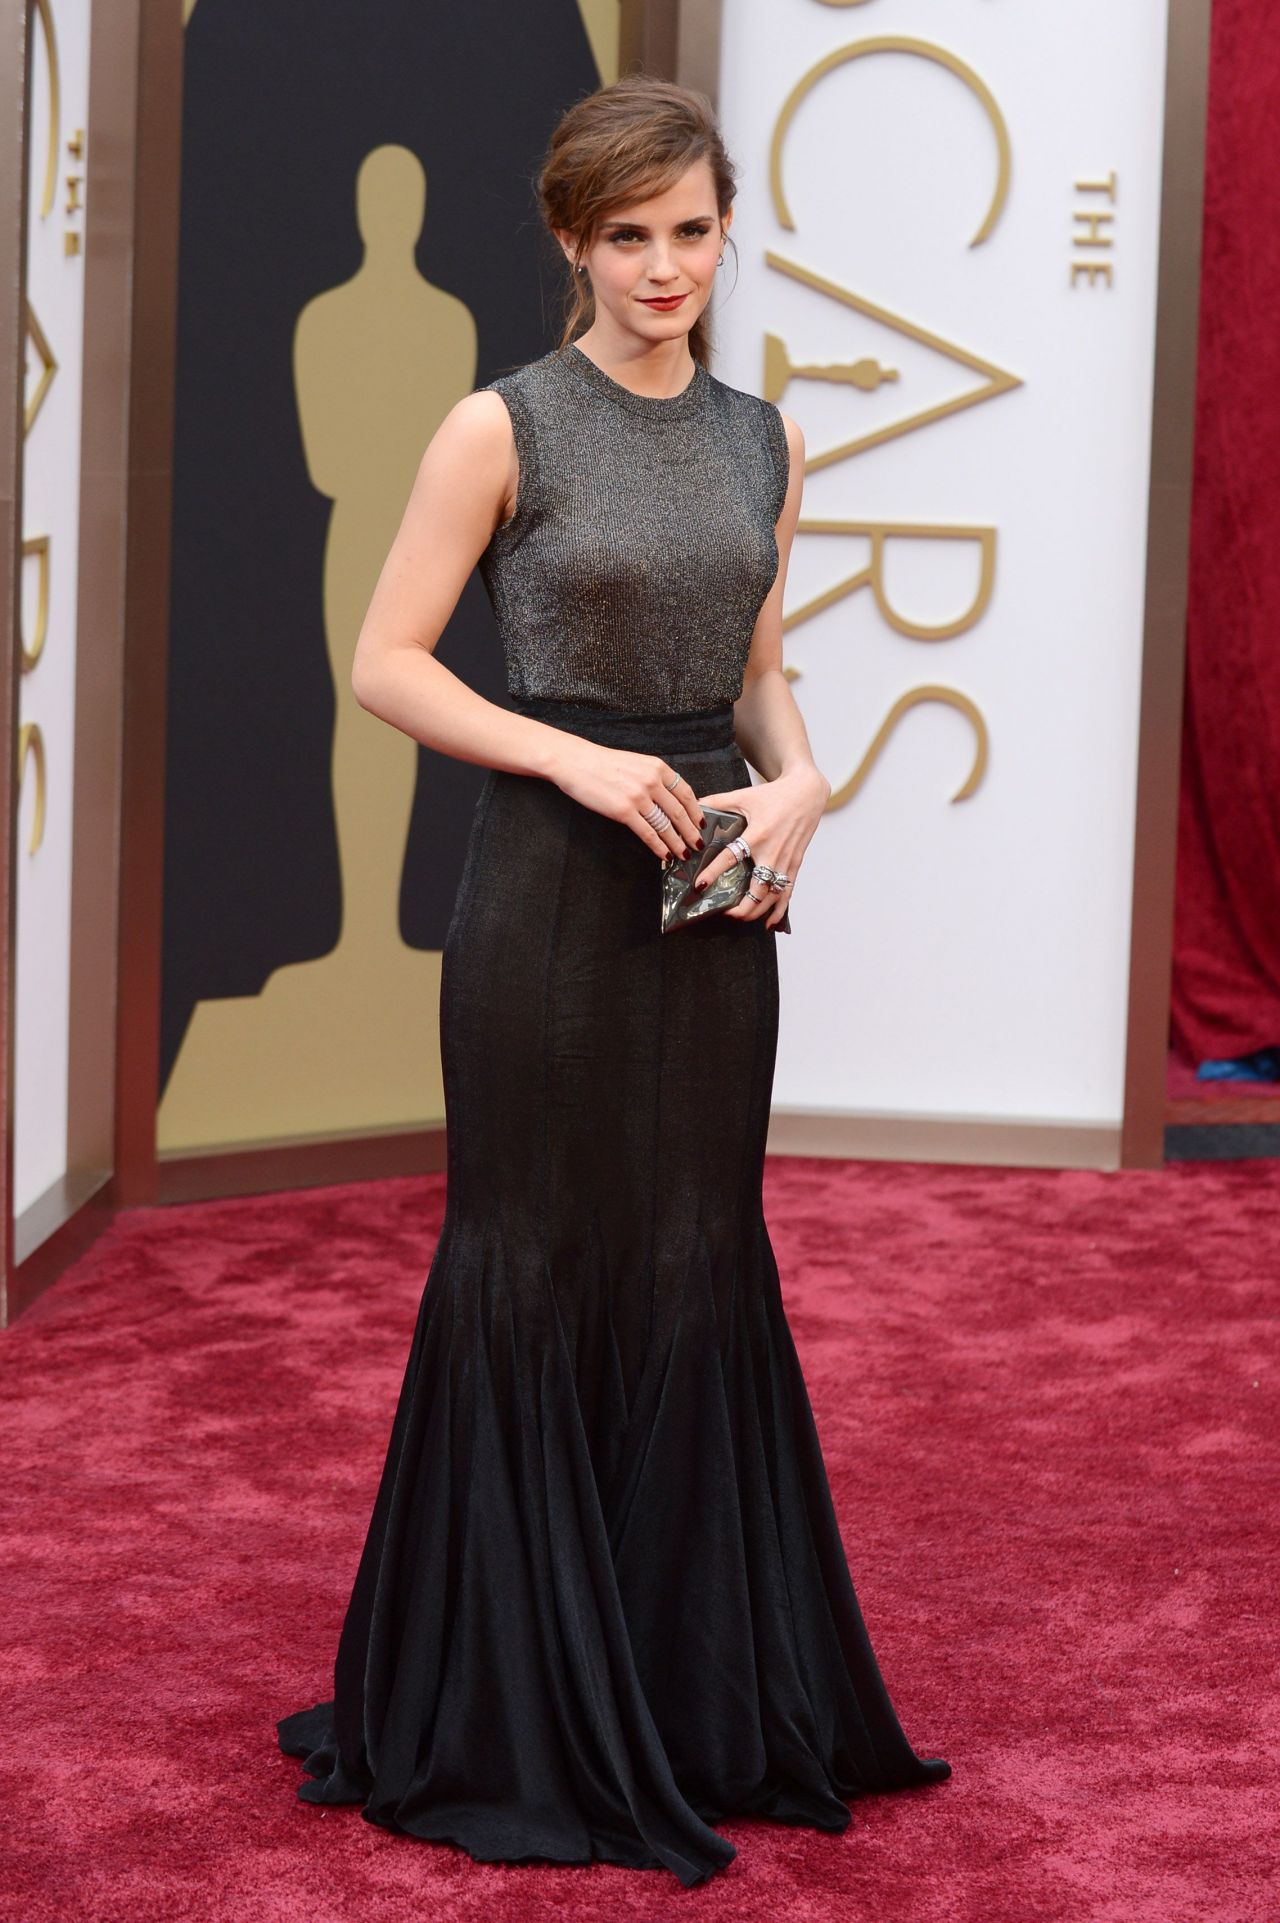 Emma watson wearing vera wang dress 2014 oscars - Red carpet oscar dresses ...